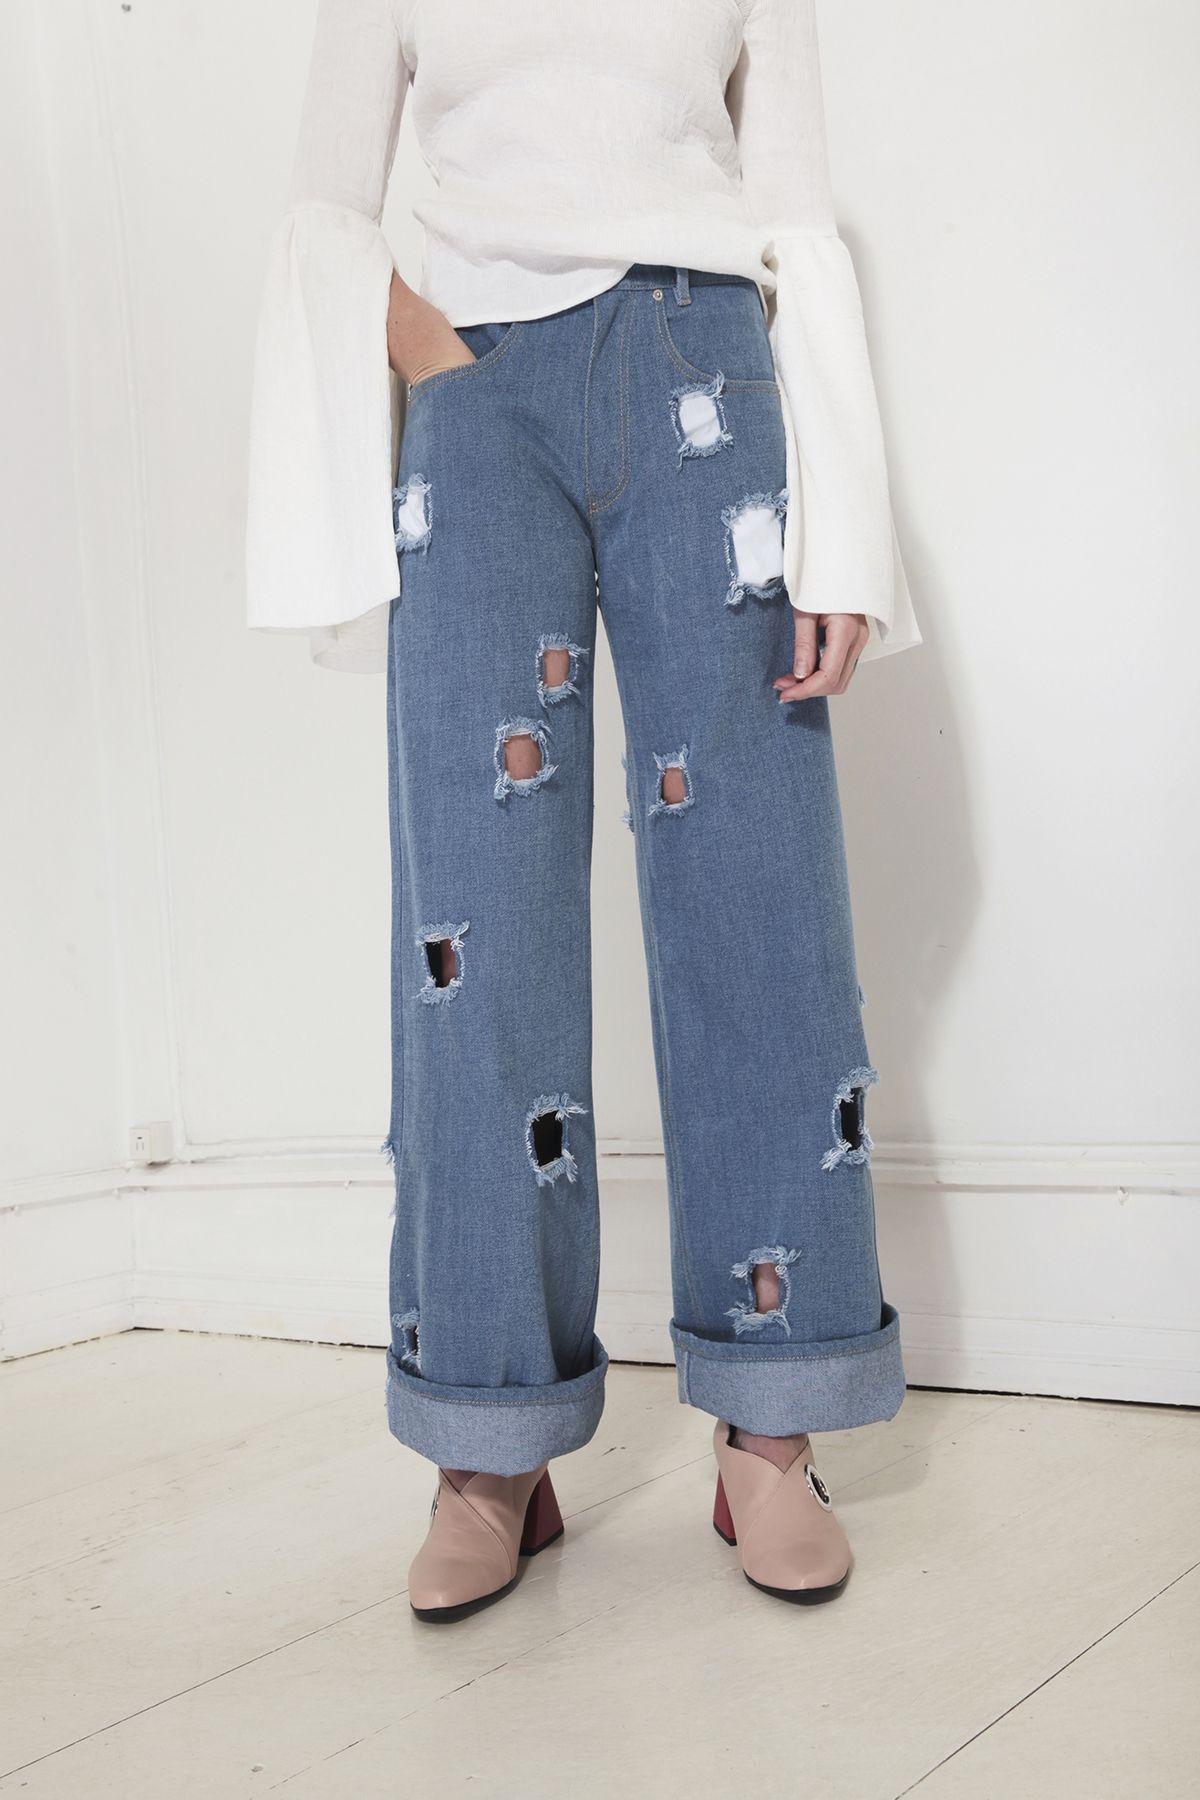 Rejina Pyo Jeans with holes in a pattern